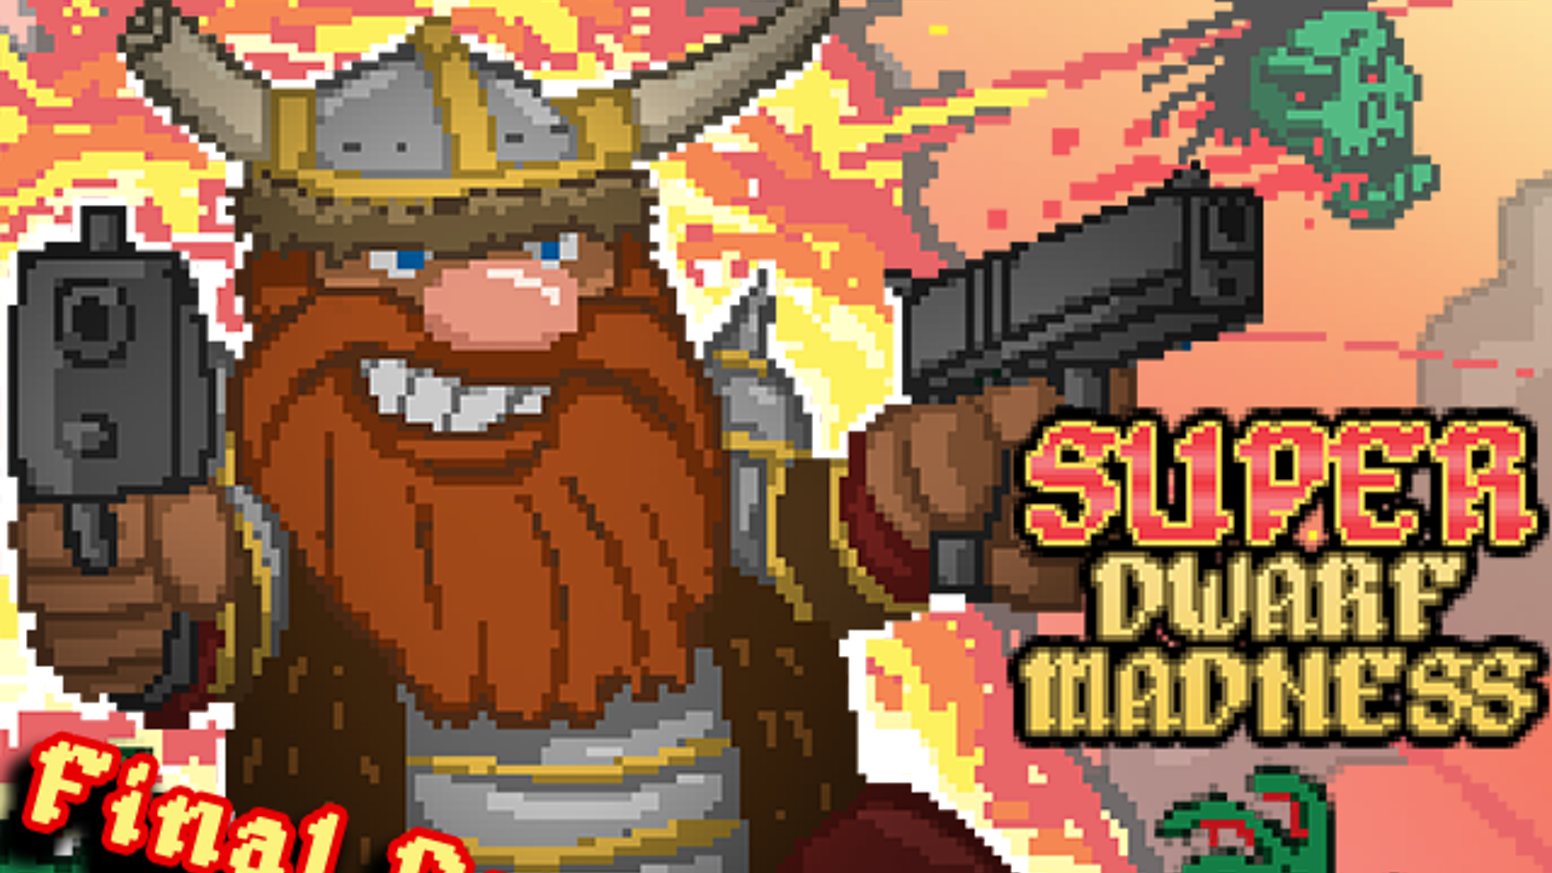 """Inspired by Tolkien's """"The Hobbit,"""" these Dwarves are taking back their underground kingdom - with GUNS! A twin-stick  Action RPG epic."""